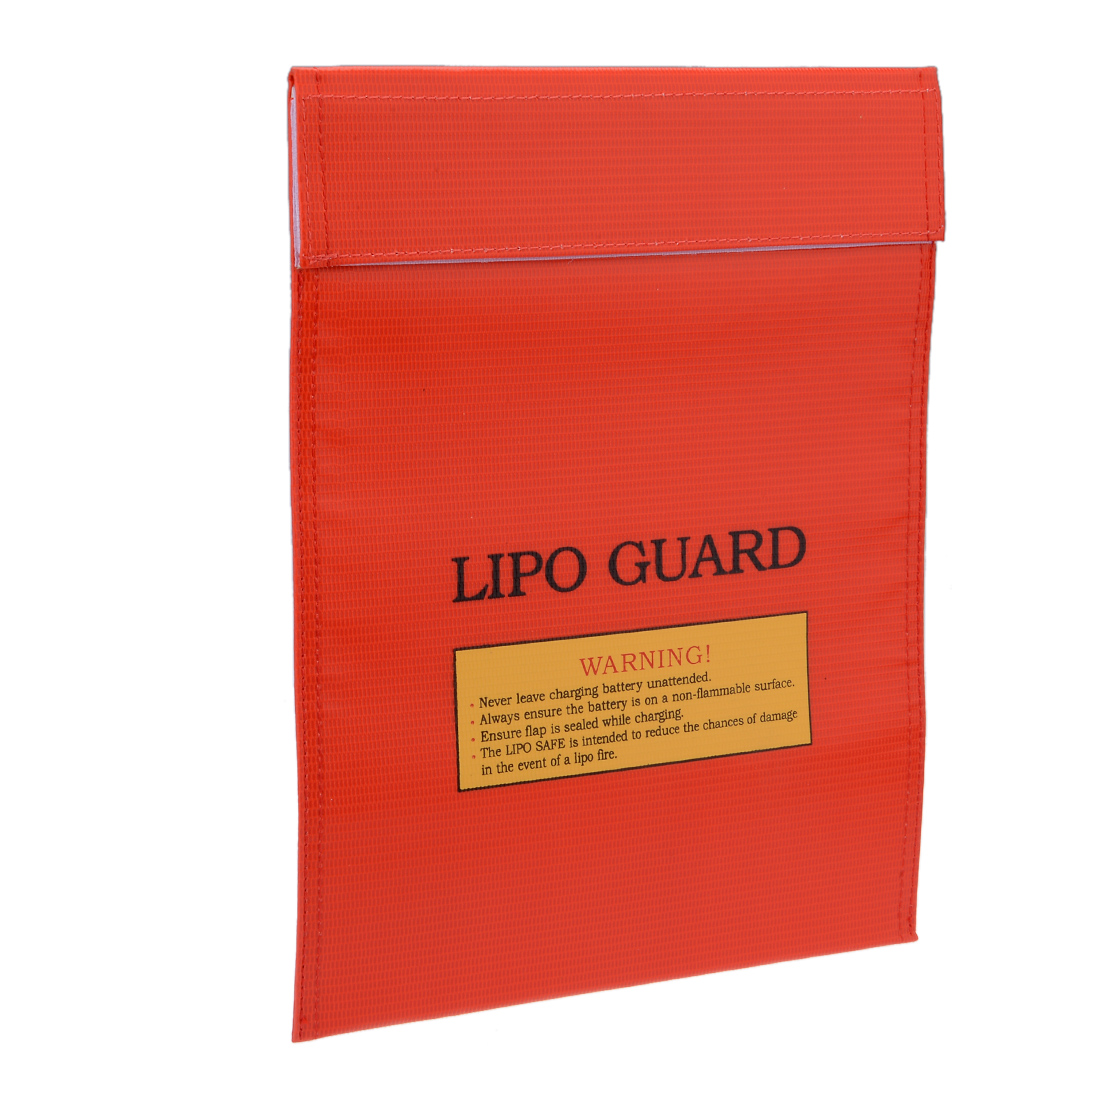 Lipo Battery Fireproof Explosionproof Bag Storage Guard Safe Charging Holder 23cm x 30cm Red